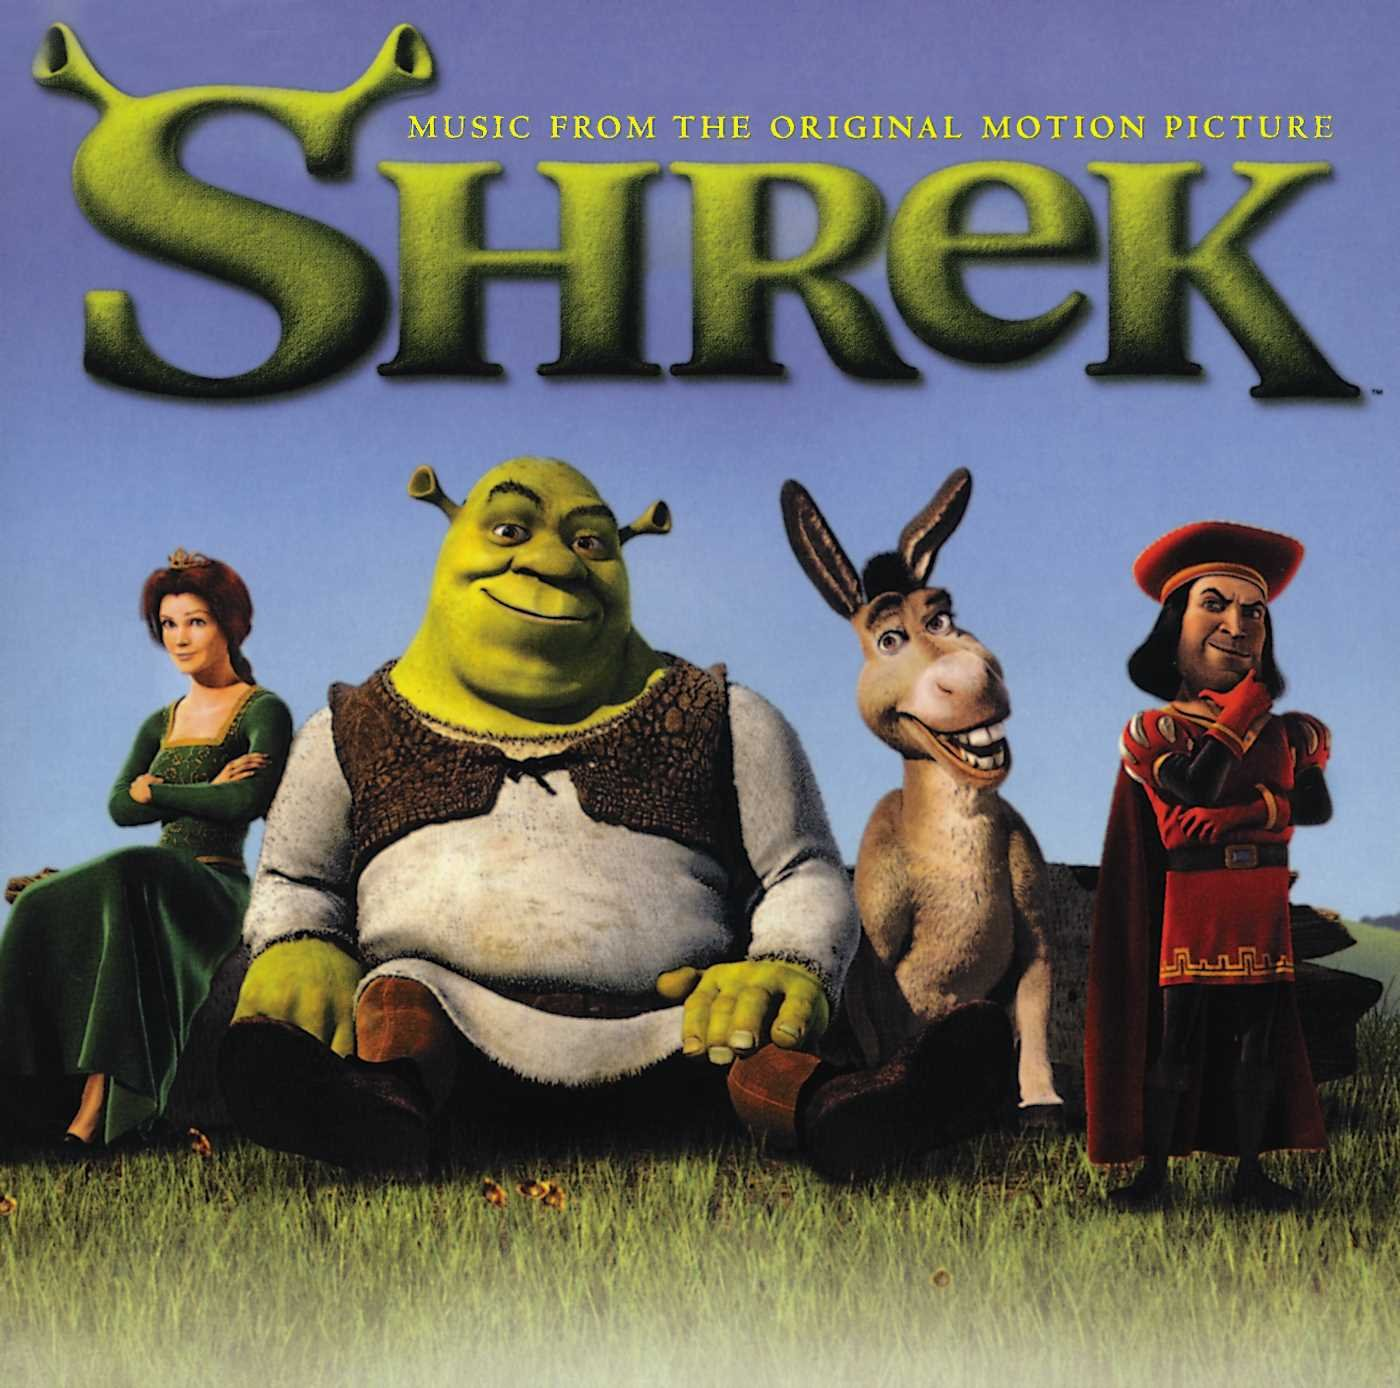 Harry Gregson-Williams, John Powell, Various Artists - Soundtrack - Shrek -  Music from the Original Motion Picture - Amazon.com Music